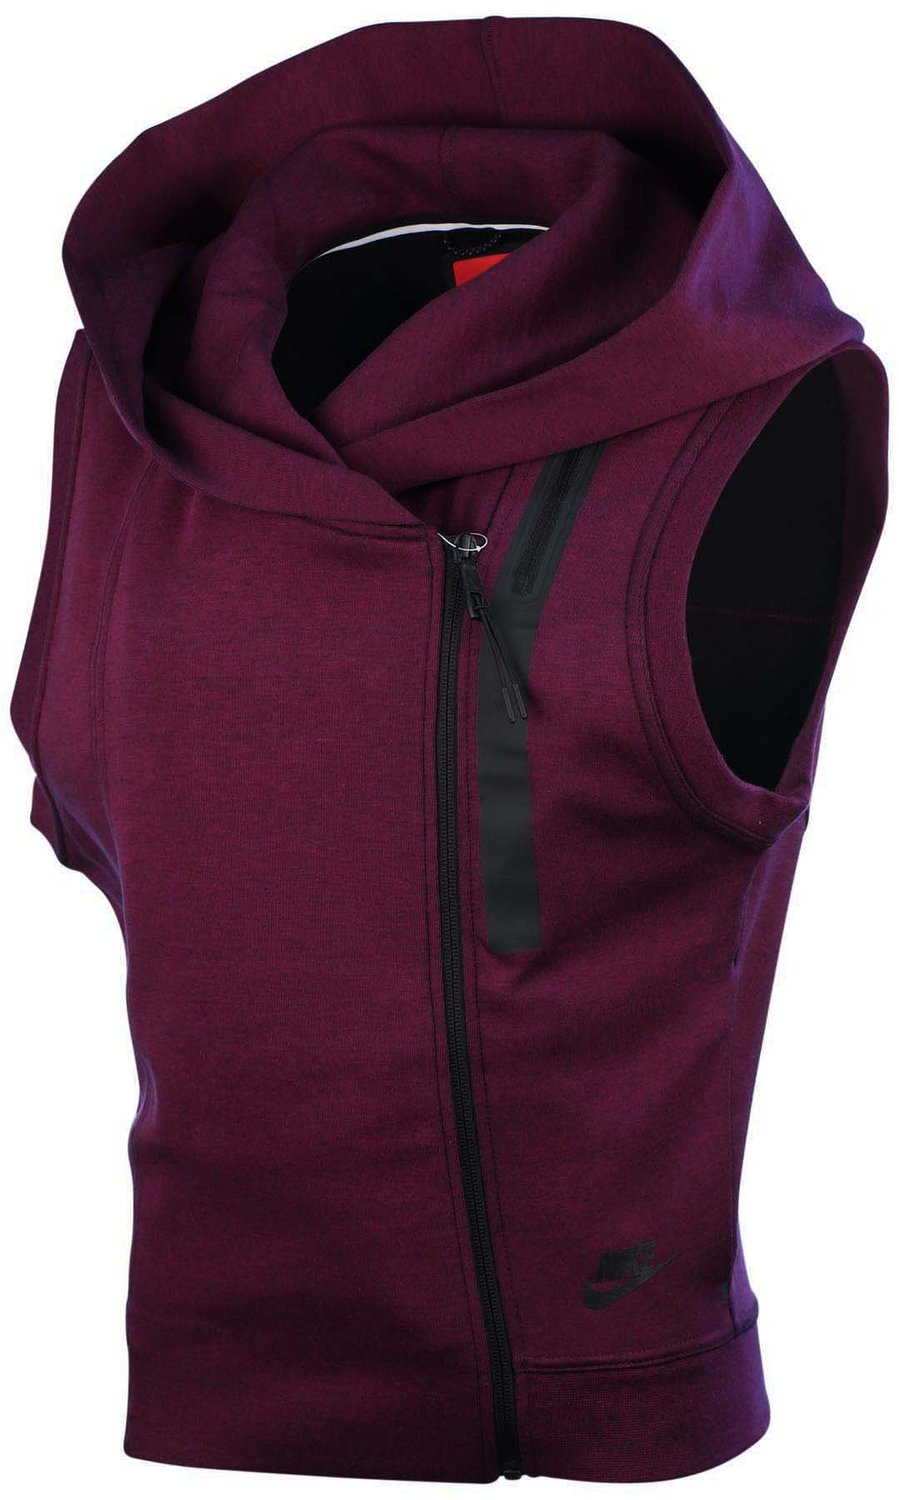 a17dbe11d939 Get Quotations · Nike Womens Tech Fleece Cape Vest